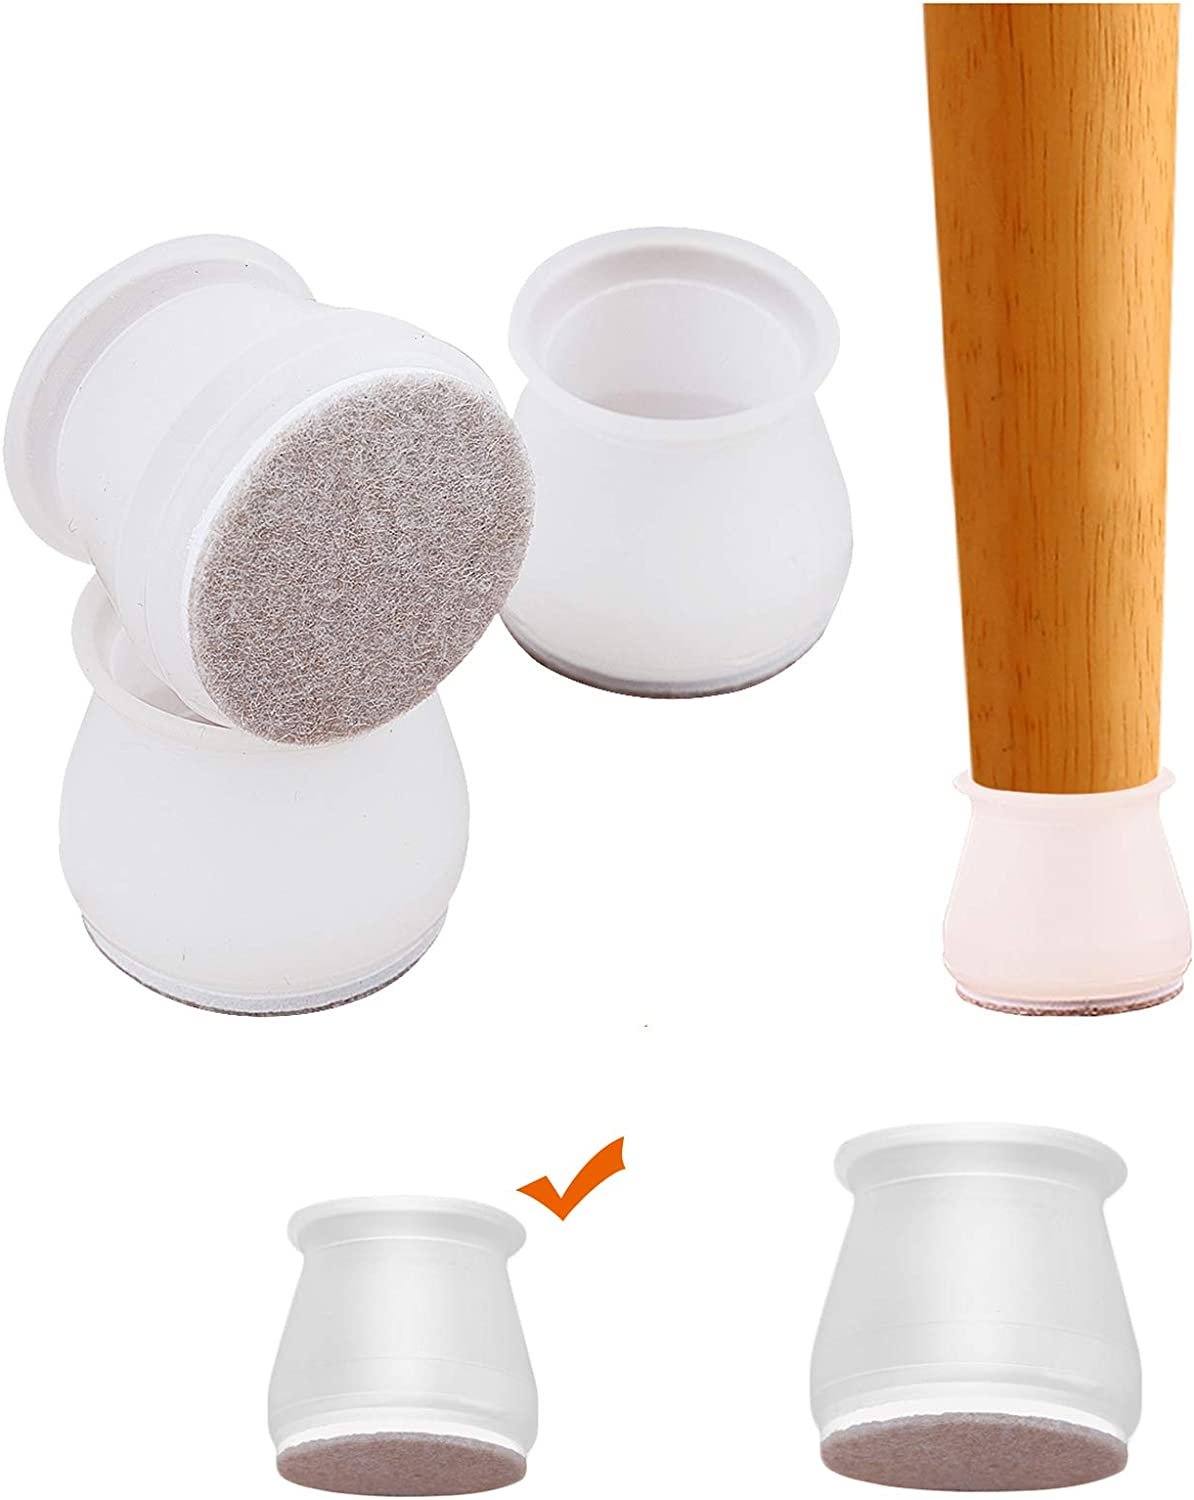 Yoaokiy Silicone Chair Leg Floor Protectors - Small Size(Fit 0.75-0.98inch) - 32Pcs Furniture Silicon Protection Cover with Felt Pads - Elastic Furniture Chair Leg Caps for Round Square Furniture feet